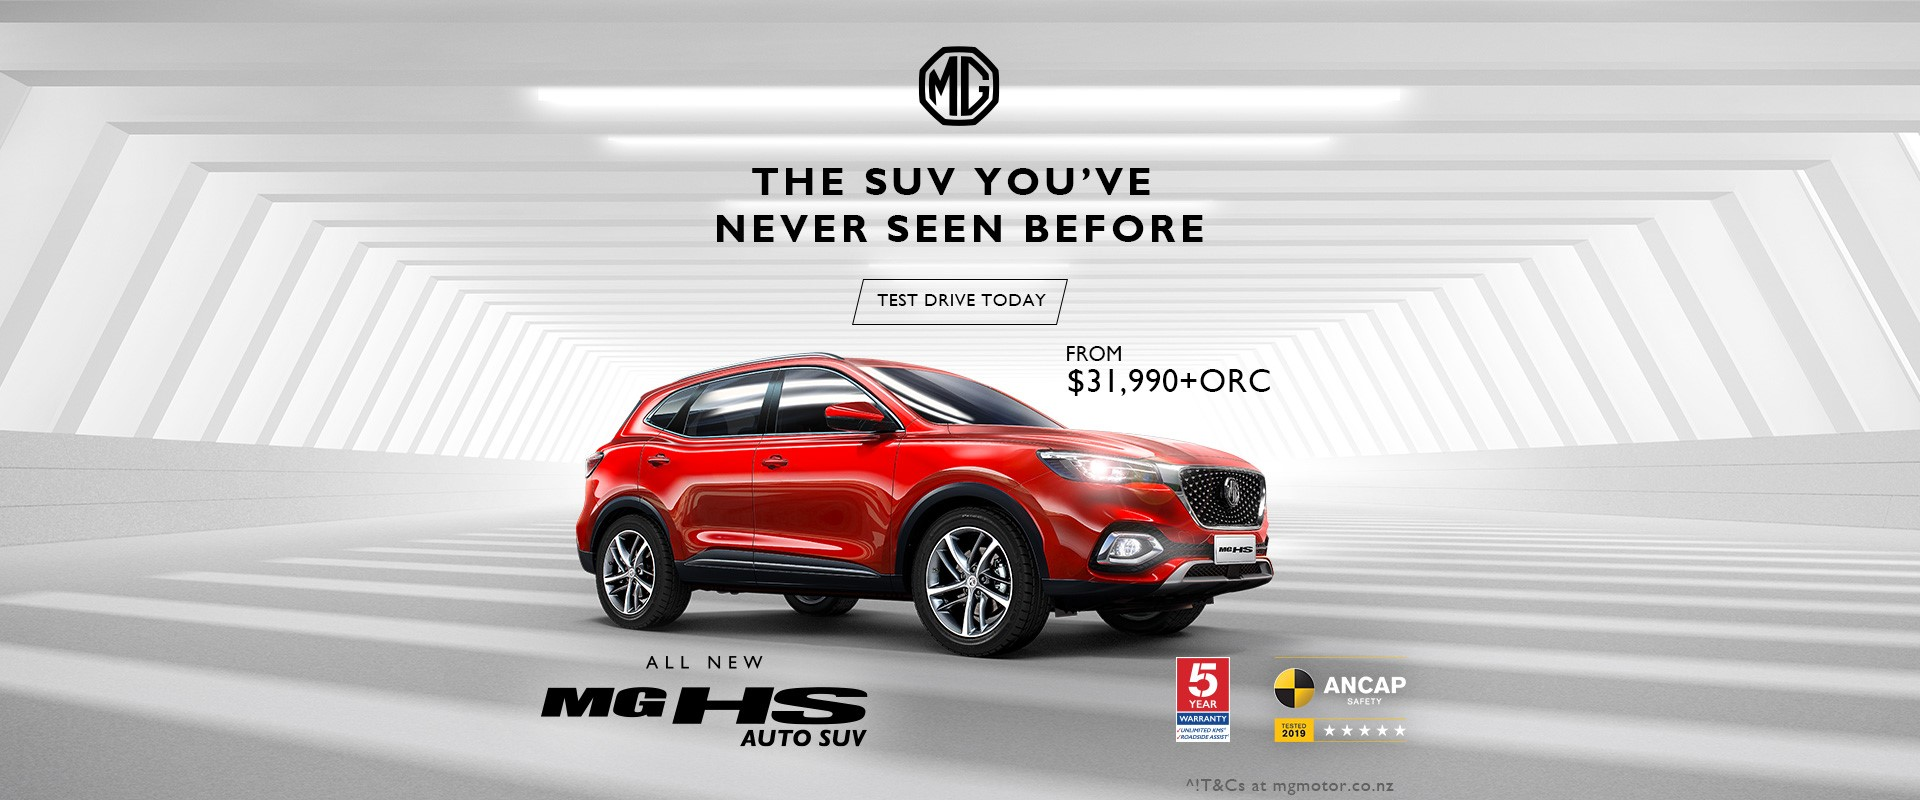 The SUV you've never seen before. The all new MG HS